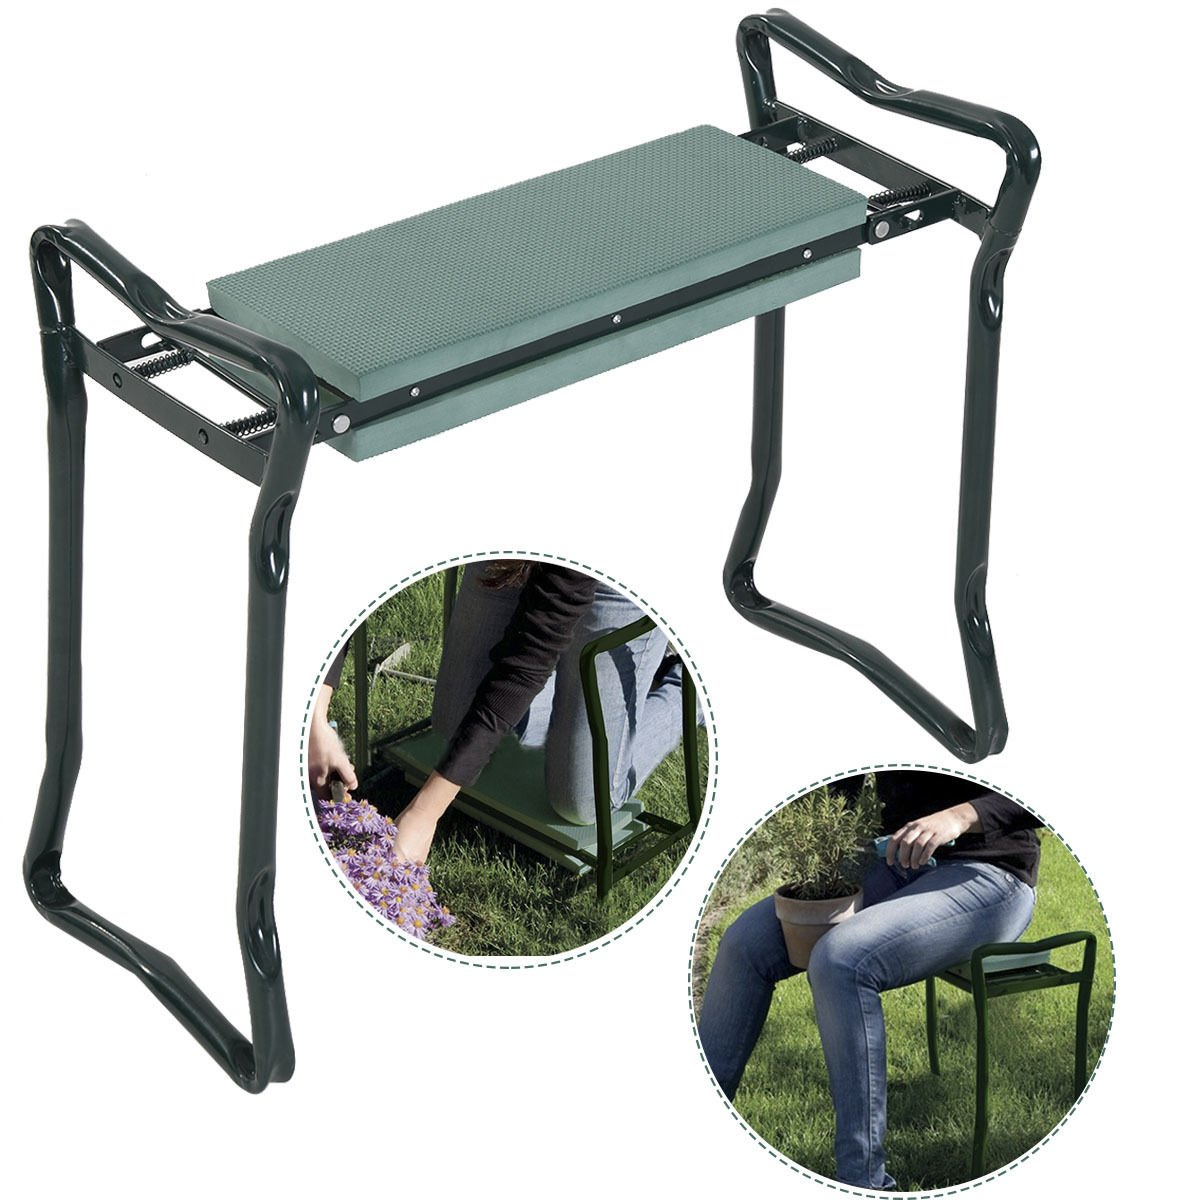 buy folding gardening eva gifts product aliexpress portable steel garden foldable stainless com store handles stool kneeling tool with kneeler pad supply